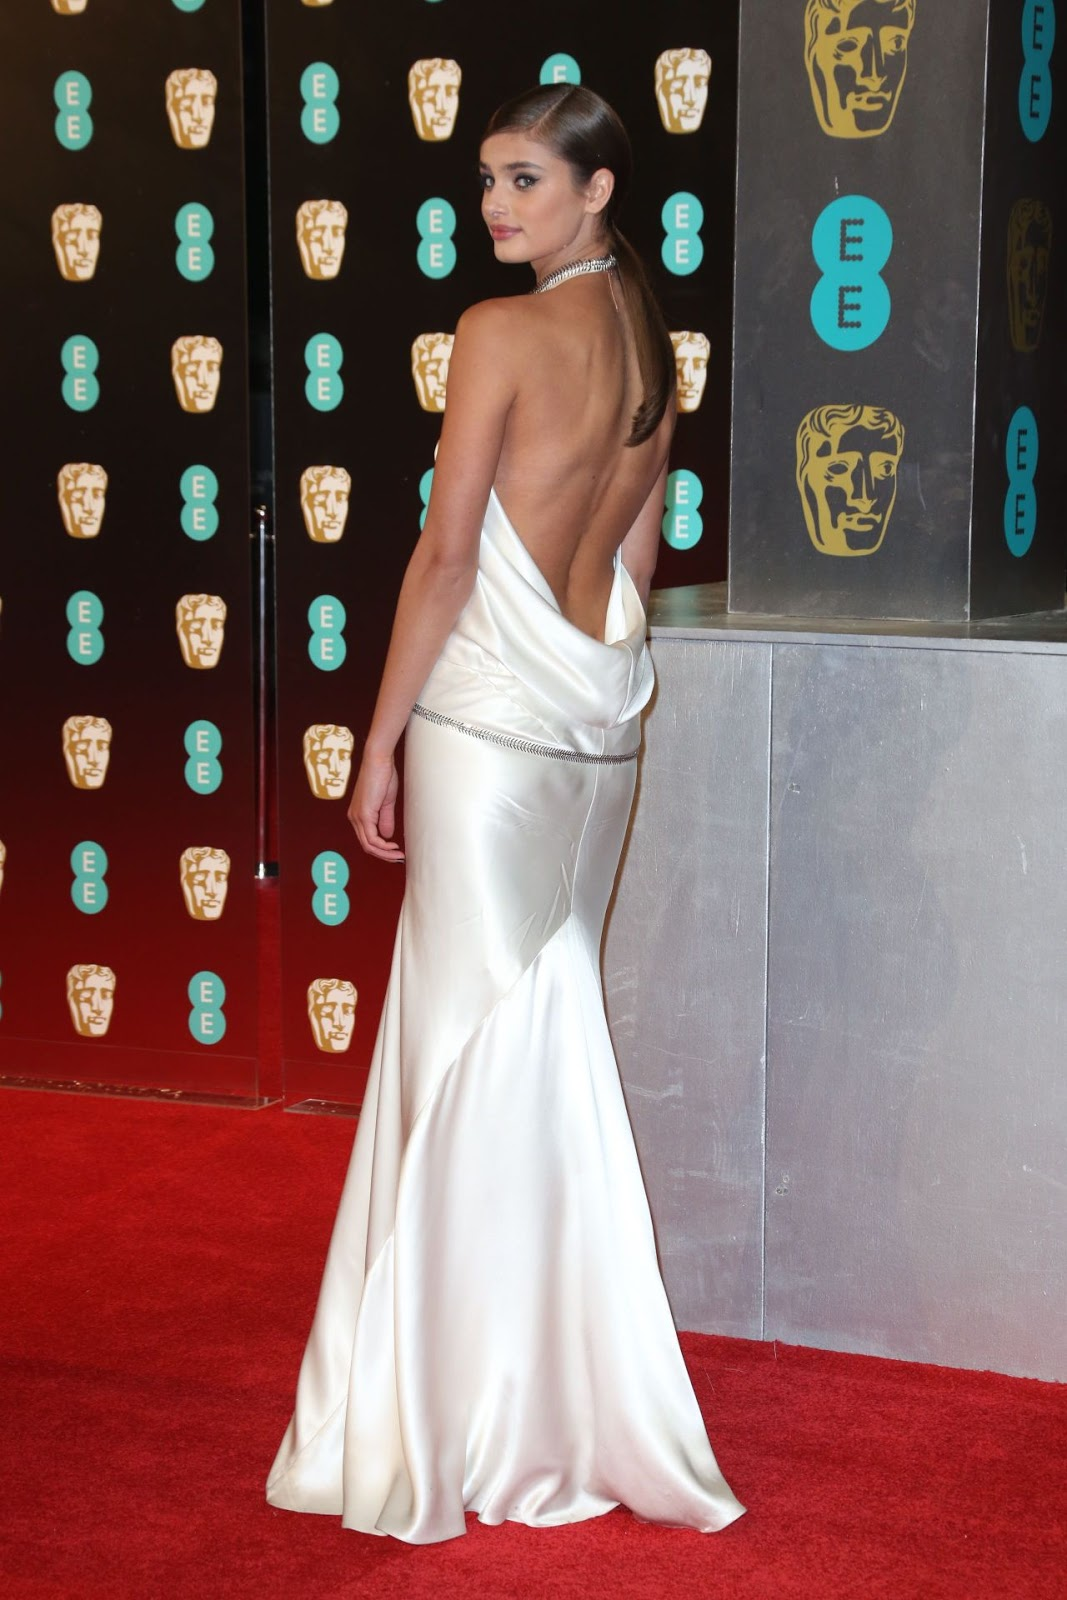 Taylor Hill flashed some serious skin in a white satin gown with a metal chain as she hit the BAFTAs at London's Royal Albert Hall